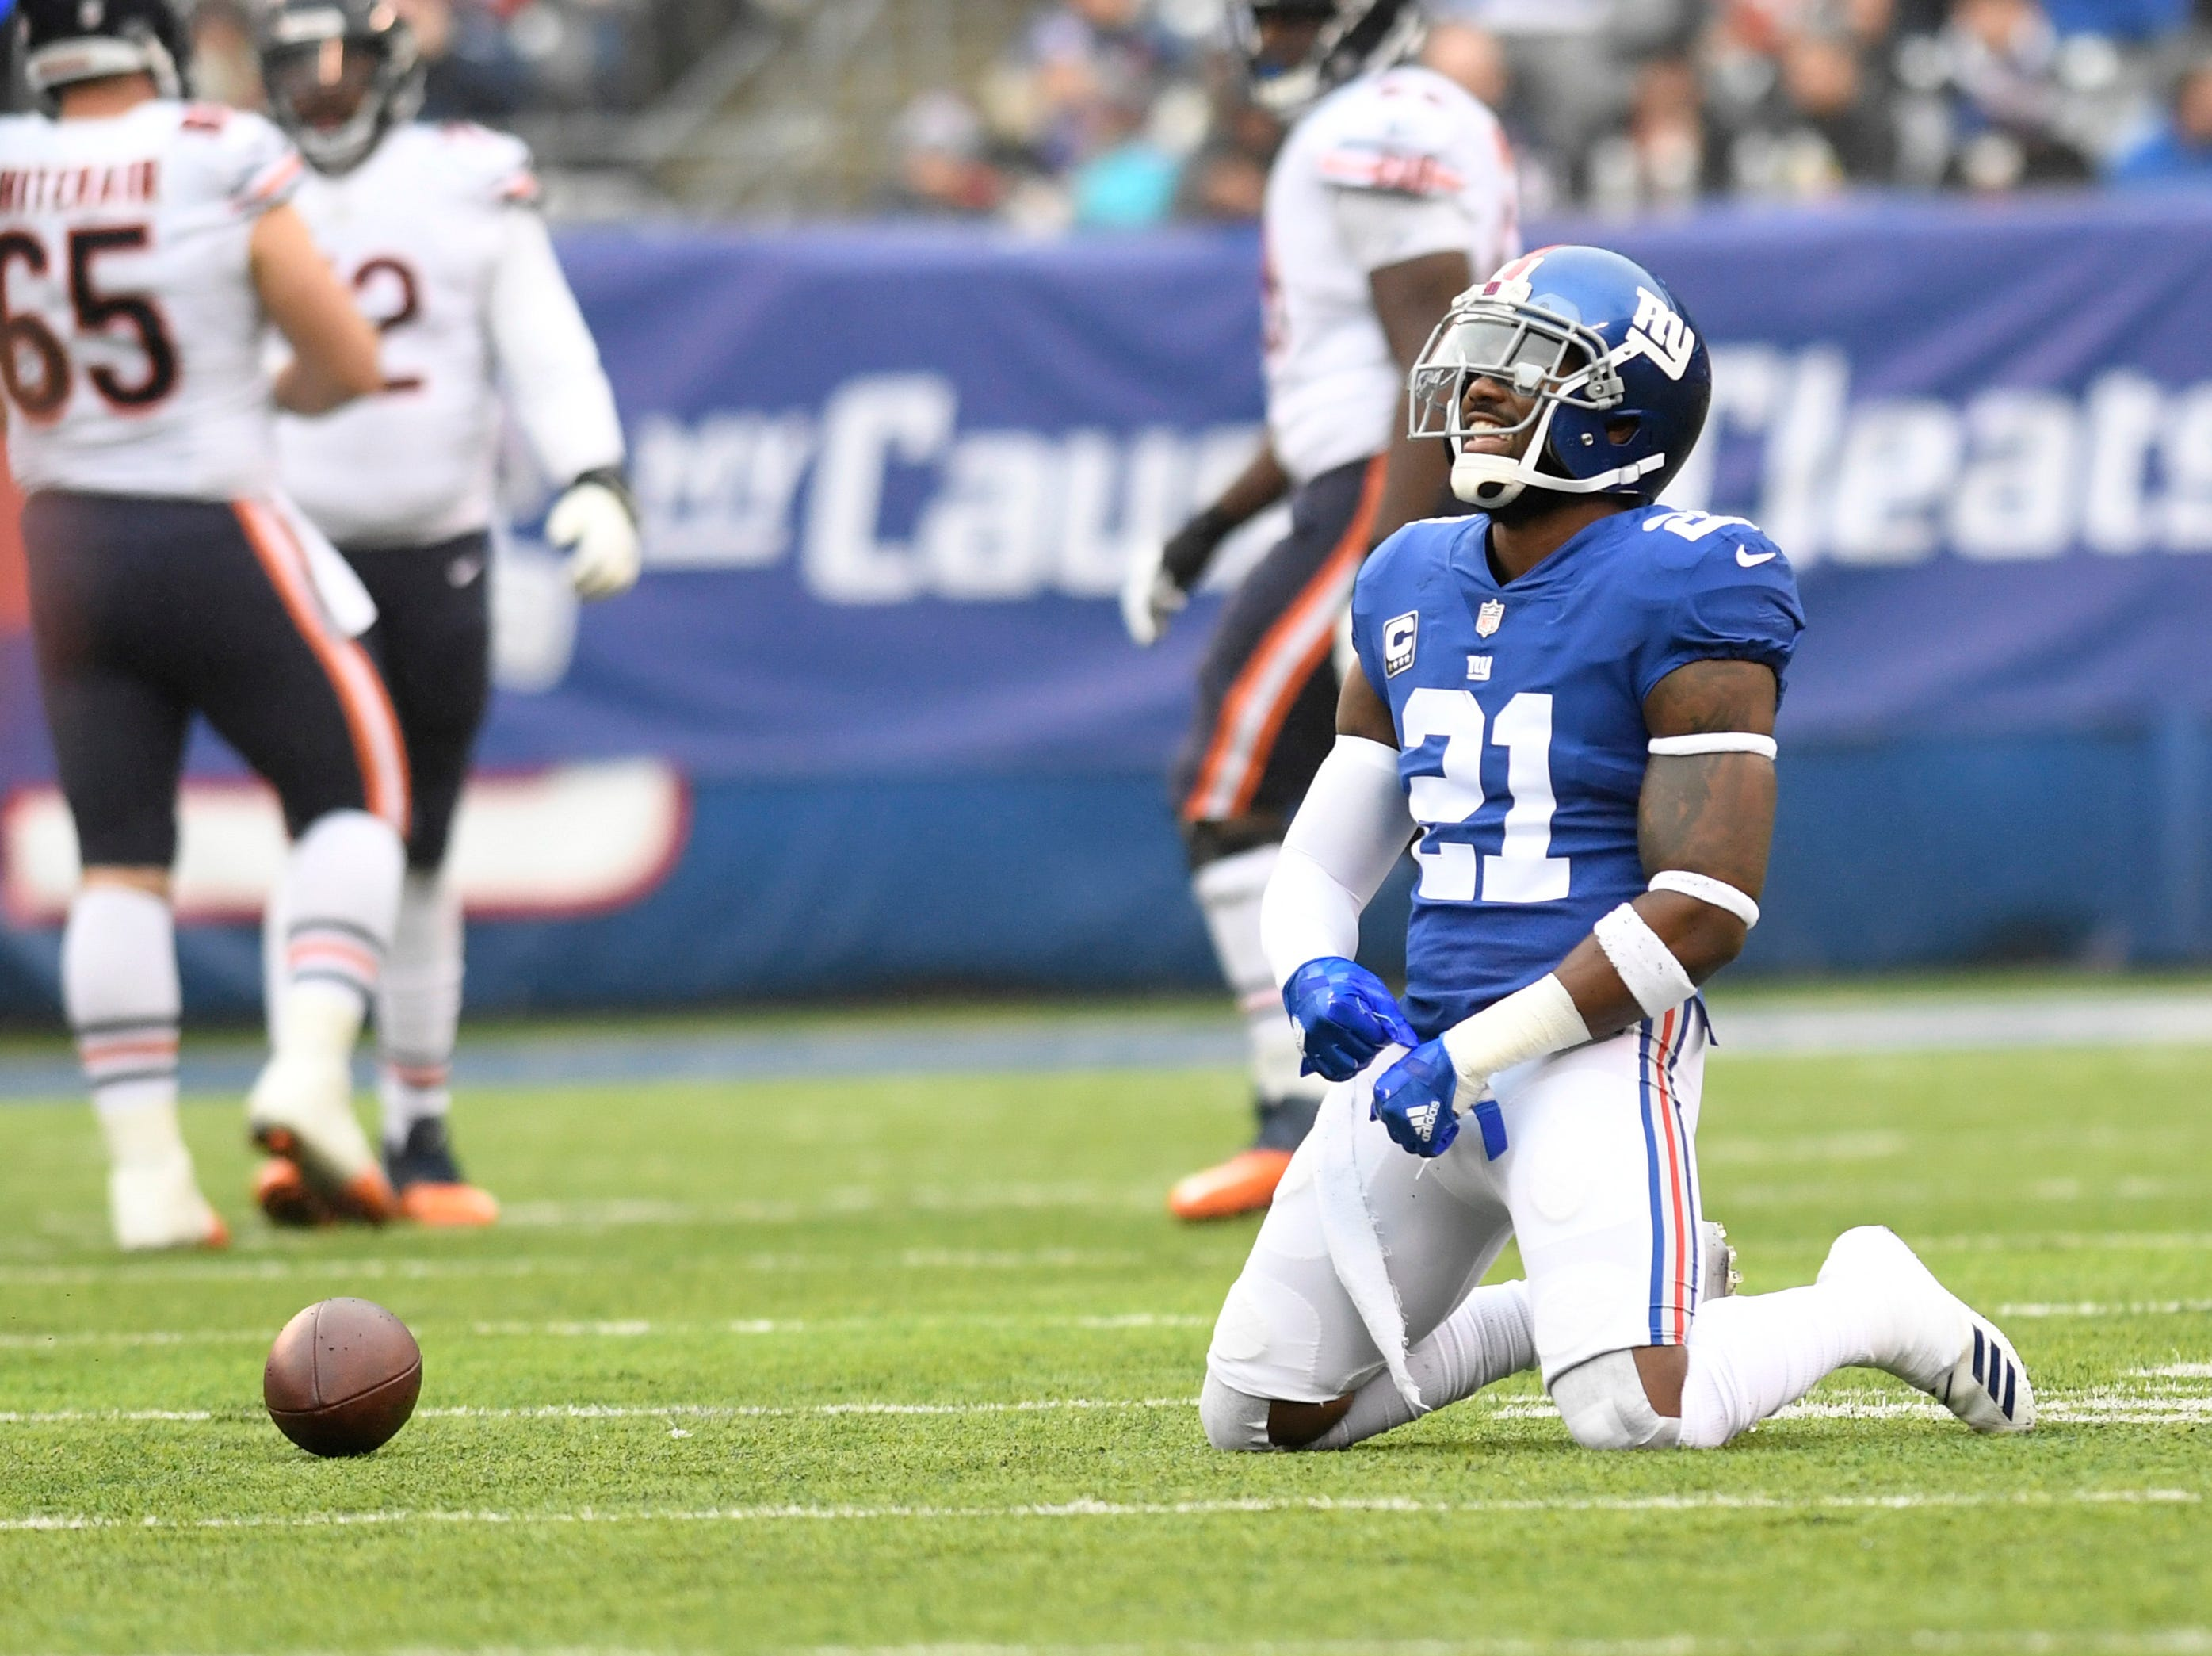 New York Giants safety Landon Collins (21) smiles after nearly intercepting a pass thrown by Chicago Bears quarterback Chase Daniel (not pictured) in the first half. Collins was then called for a pass interference.